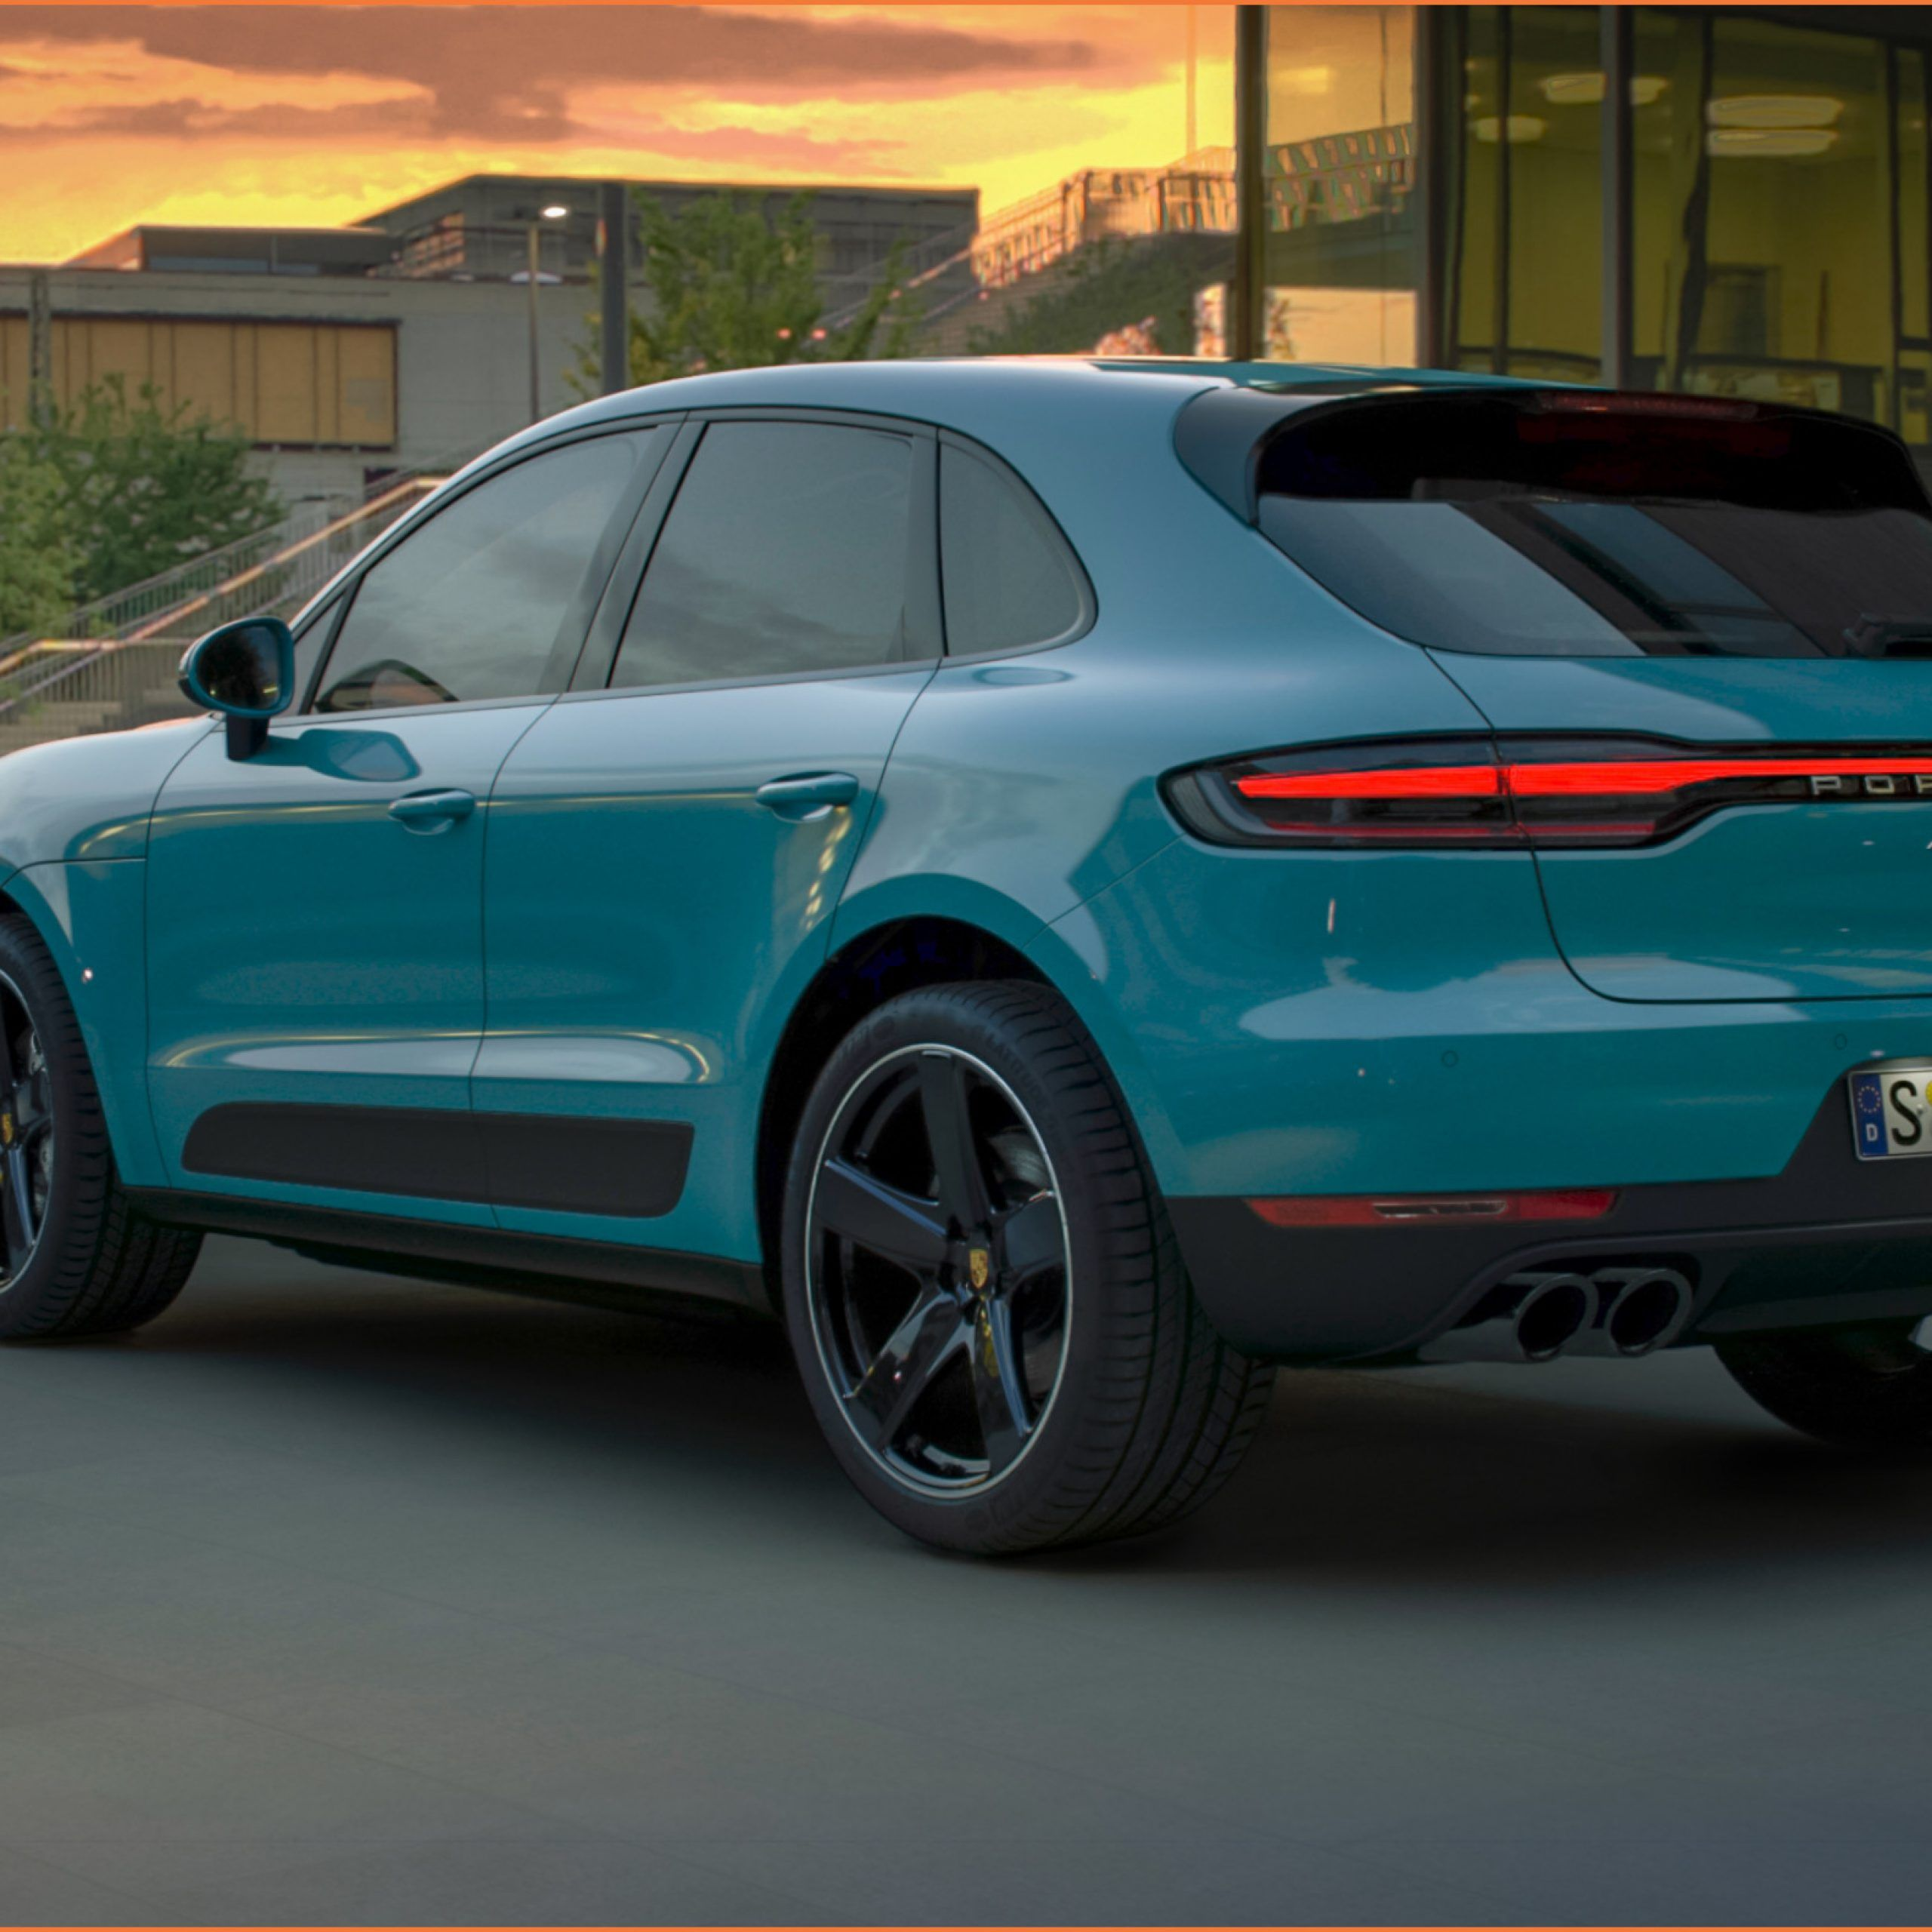 Seven Disadvantages Of Macan Porsche And How You Can Workaround It Macan Porsche Https Www Carsneat C Porsche Macan S Porsche Macan Gts Porsche Macan Turbo